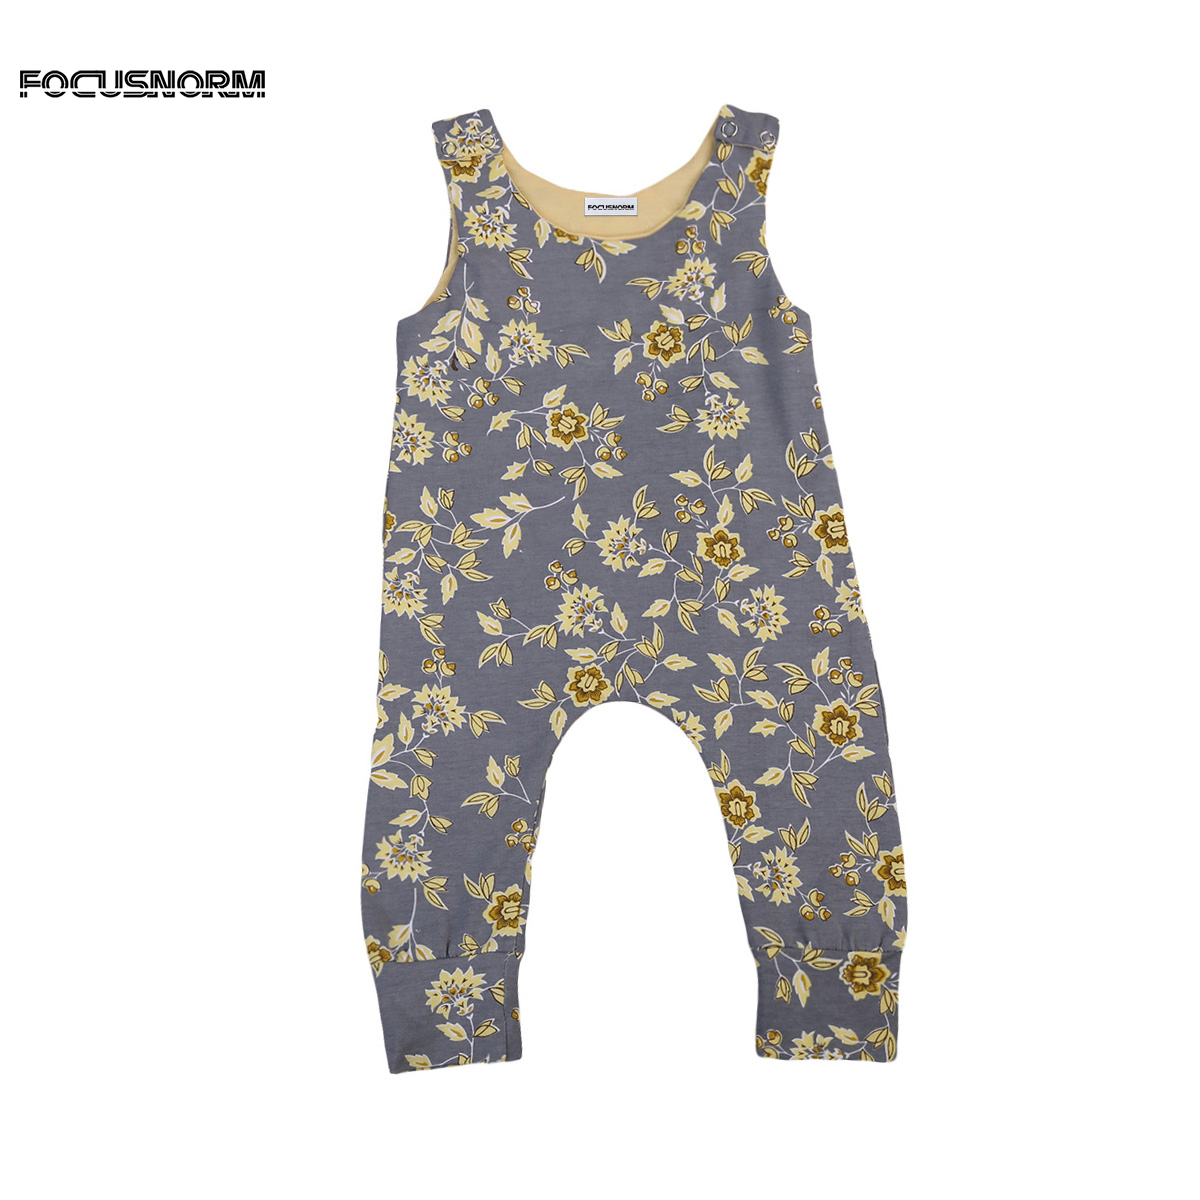 Retro Floral Romper Jumpsuit Simple Newborn Infant Baby Girls Sleeveless Playsuit Outfits Clothes